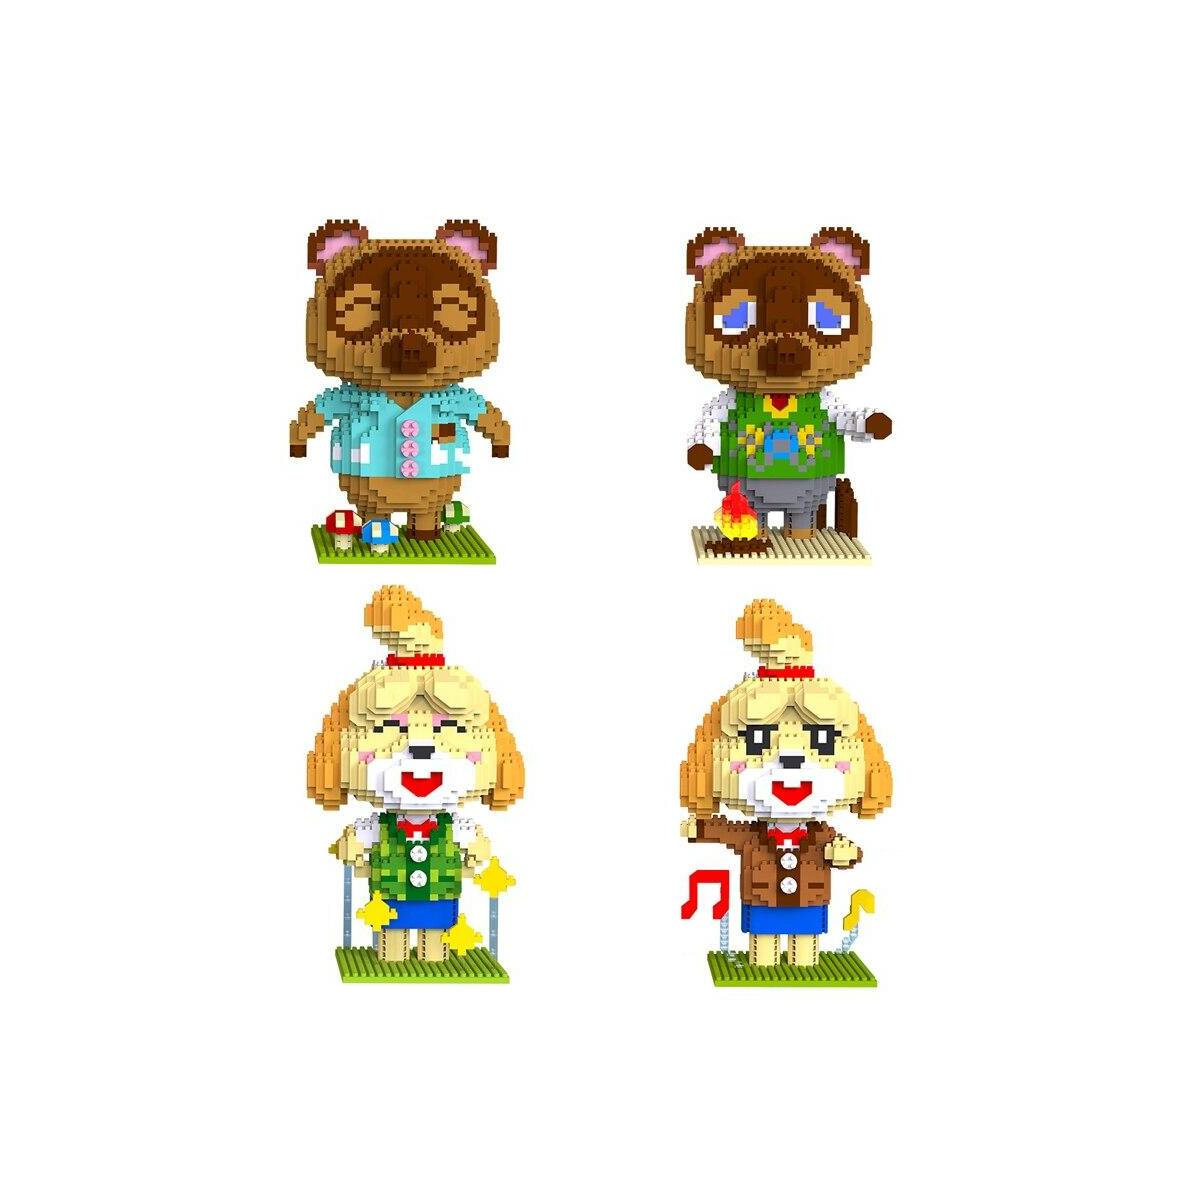 Animal Crossing Tom Nook and Isabelle Lego Style Building Block Set 1224pcs+, 6004-3 / 8in